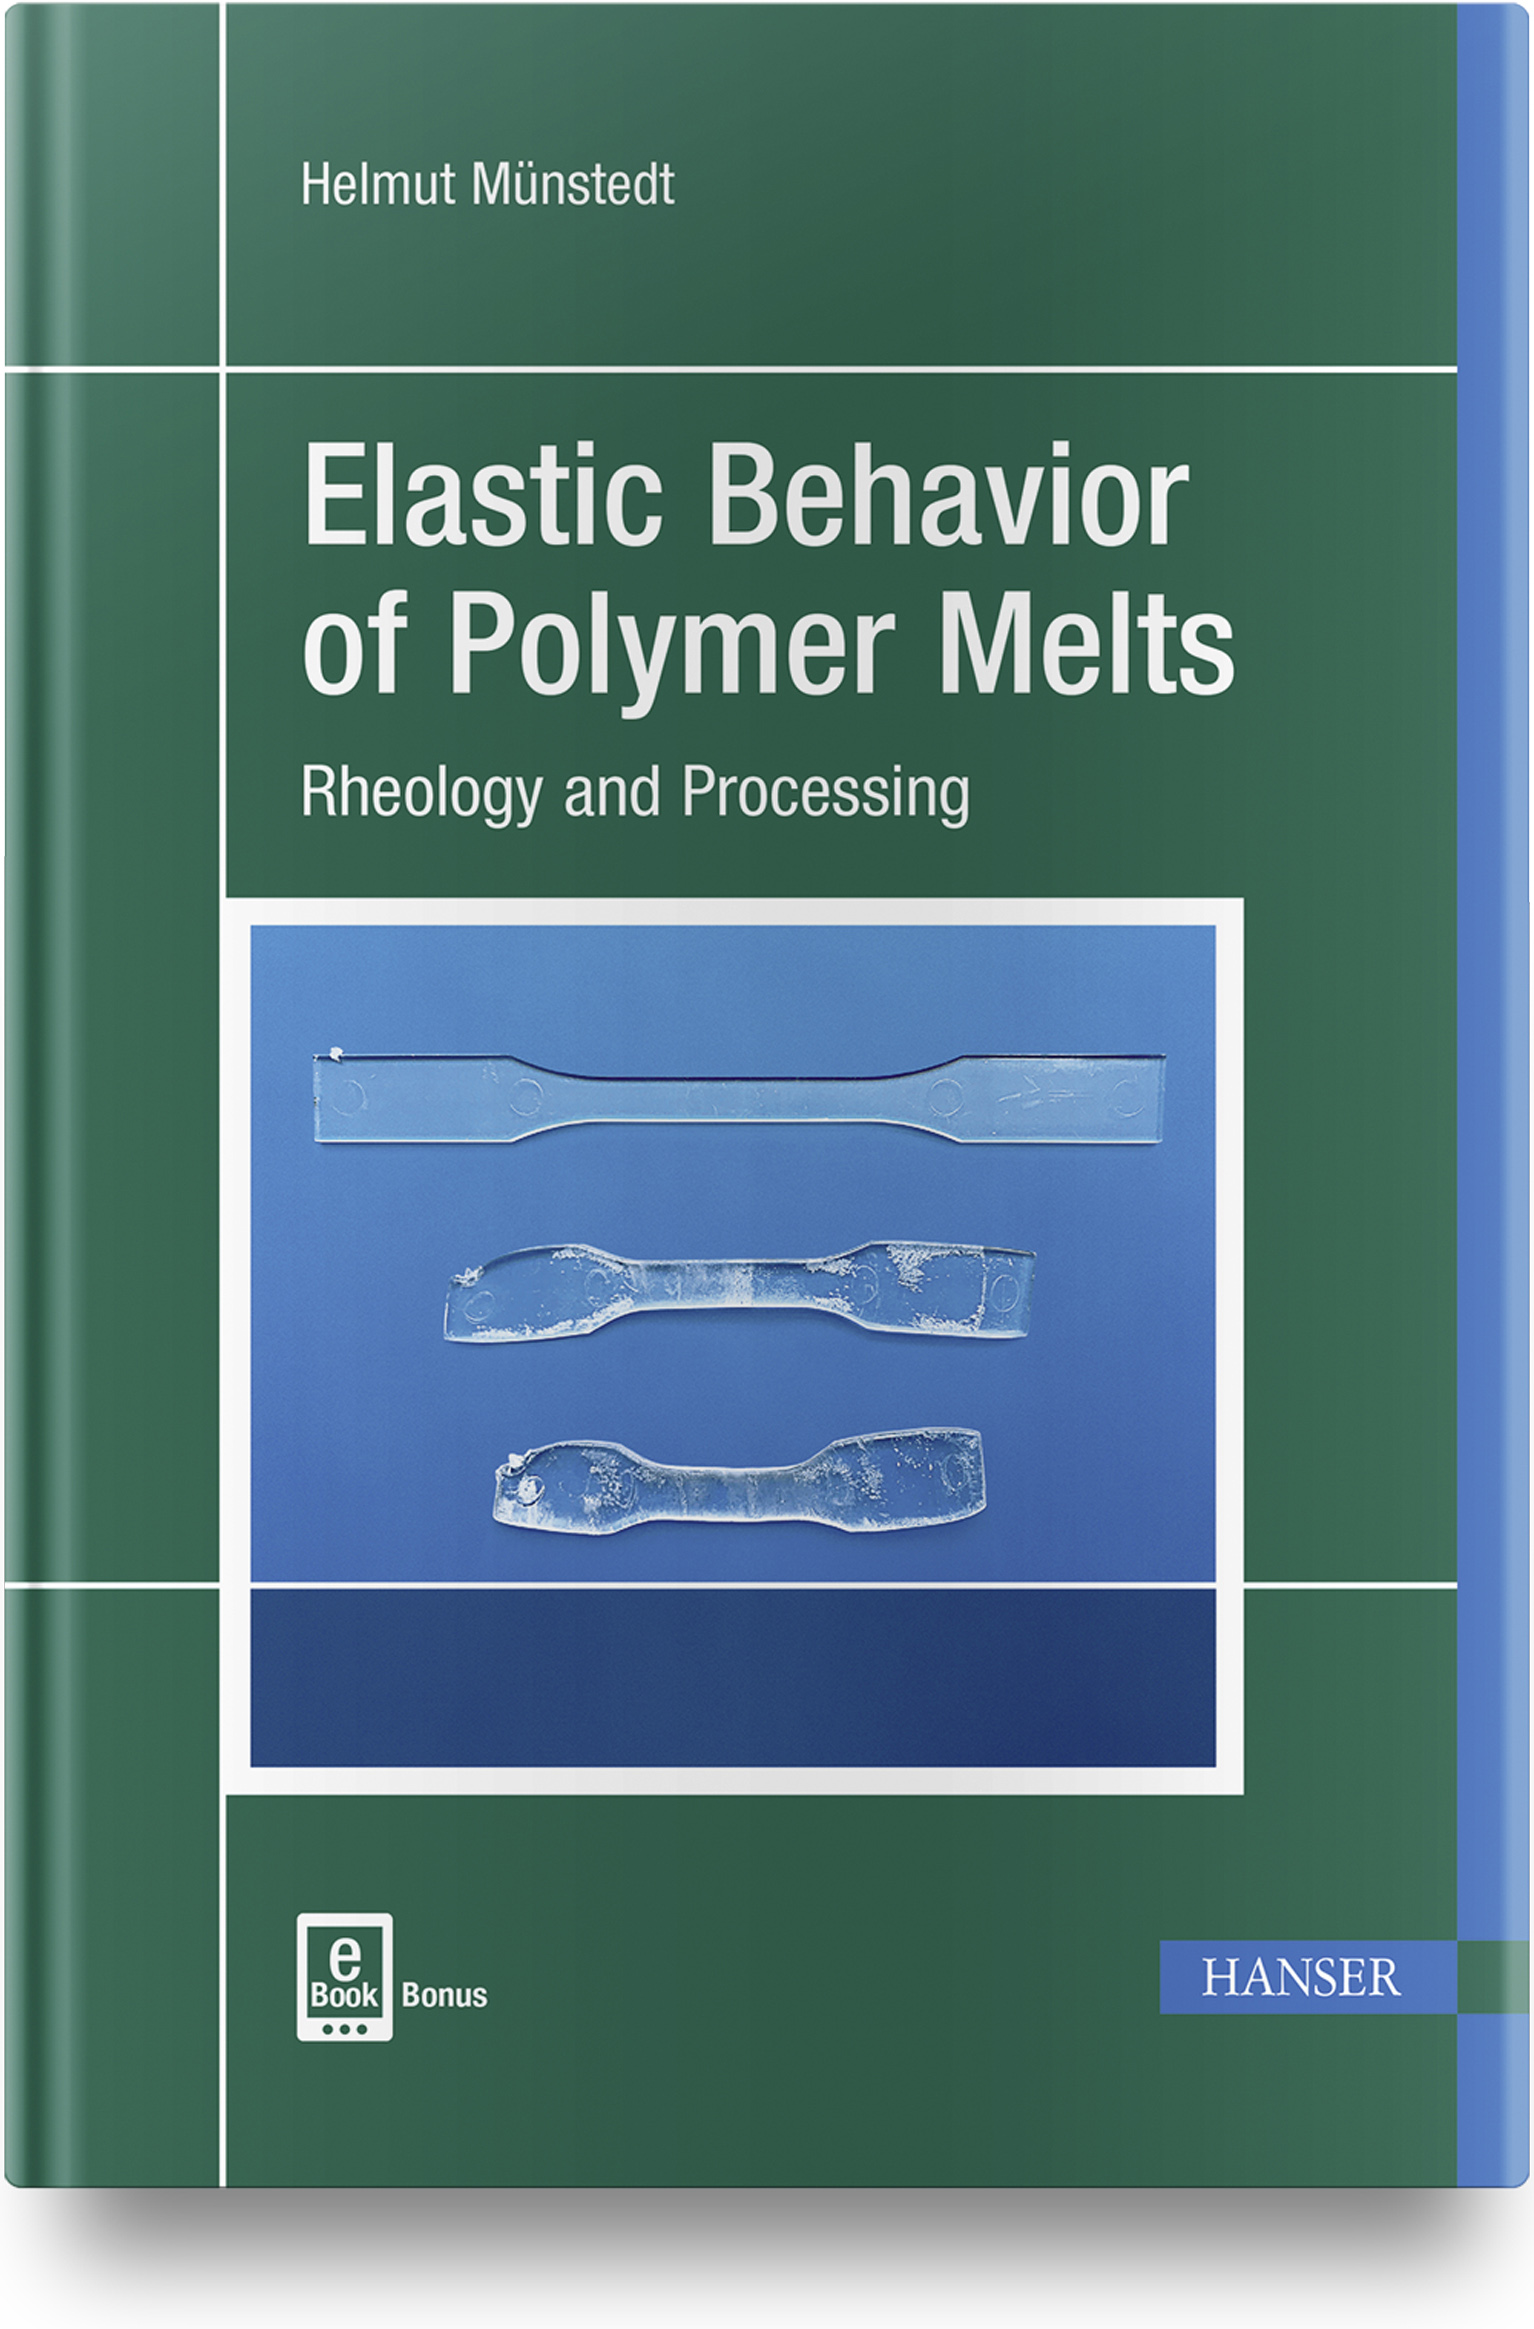 Münstedt, Elastic Behavior of Polymer Melts, 978-1-56990-754-2